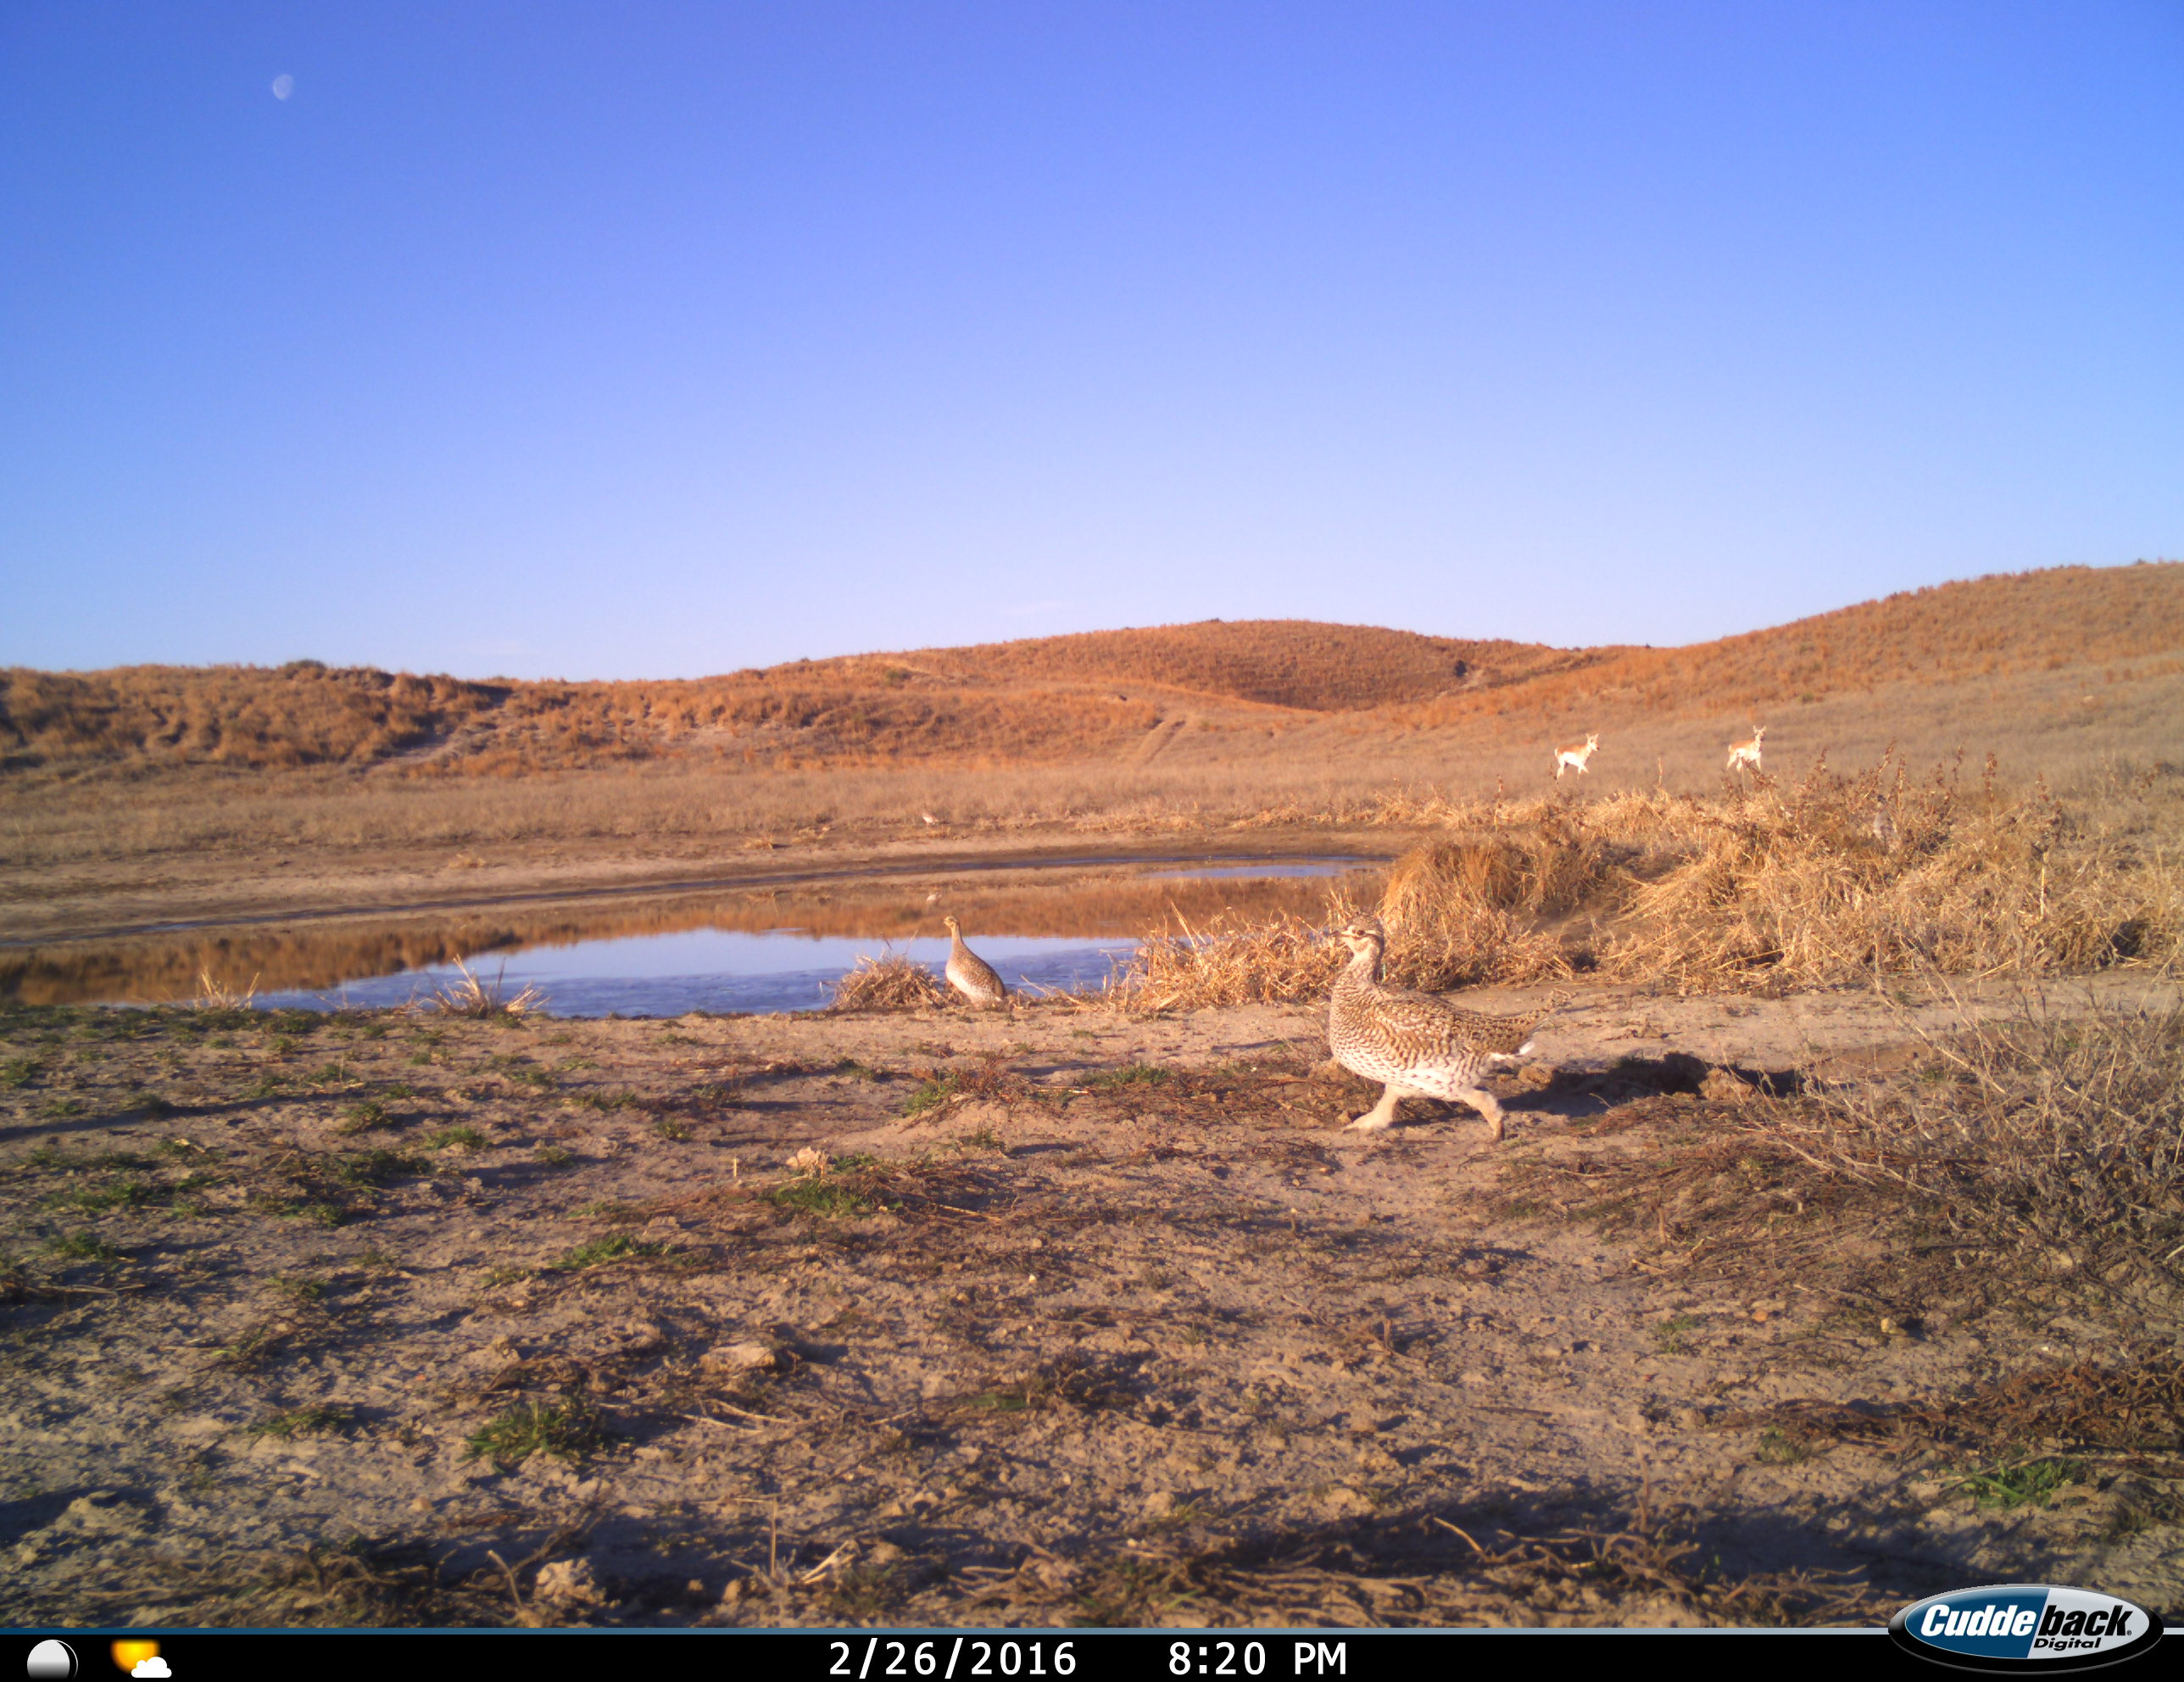 Prairie grouse and antelope feed near a watering hole.